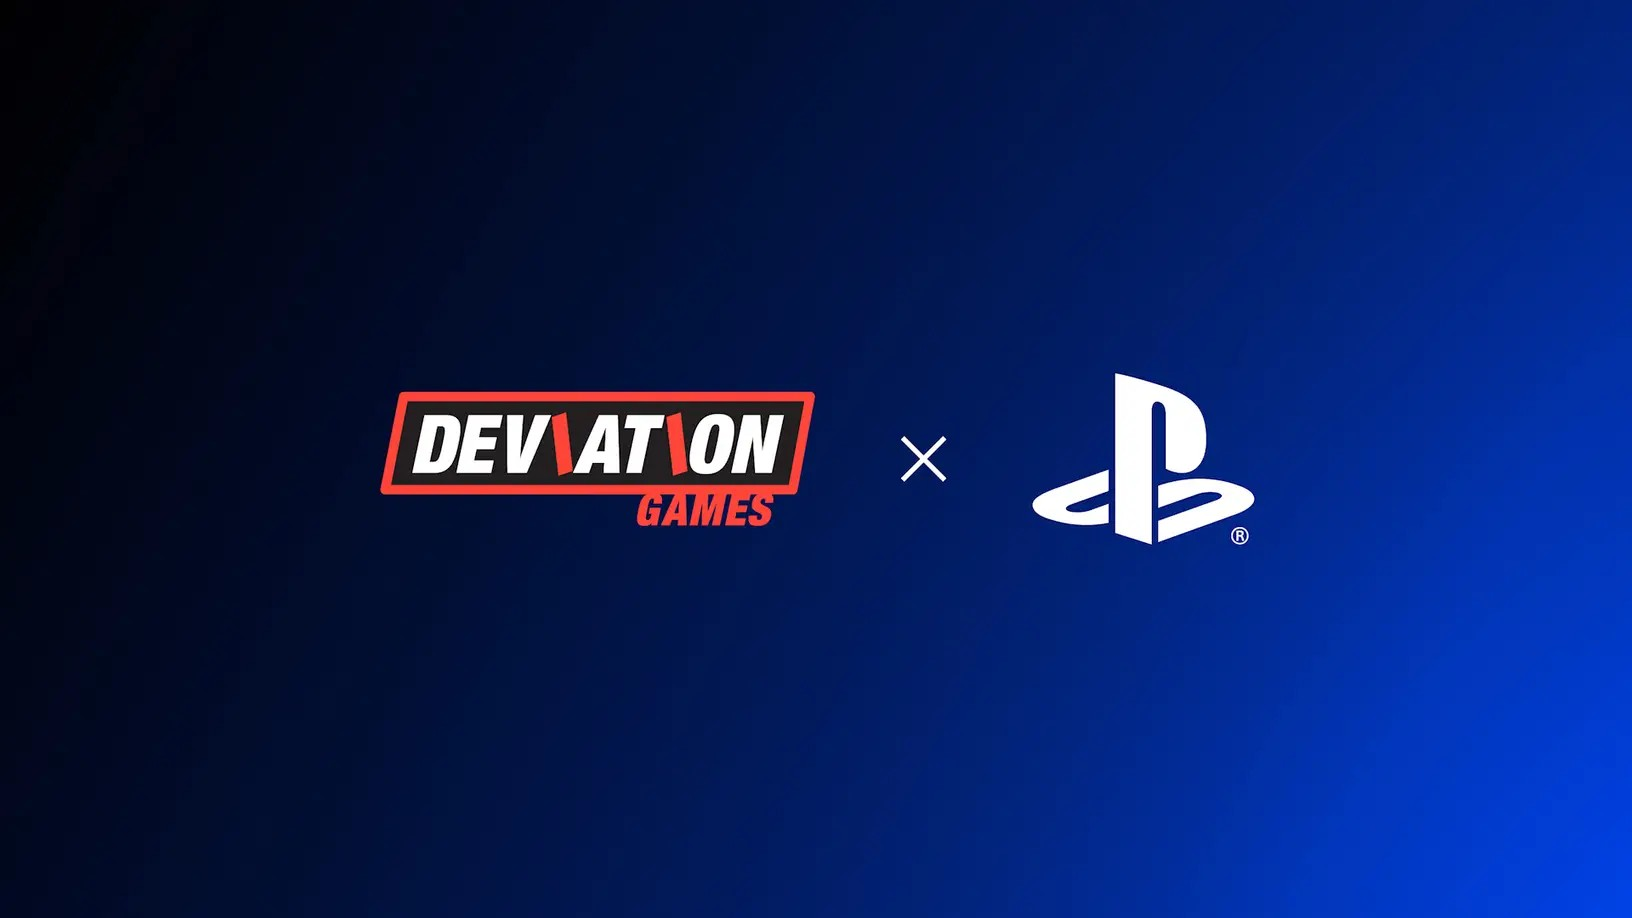 New studio Deviation Games signs with PlayStation to develop a new IP, led by former Call of Duty: Black Ops devs